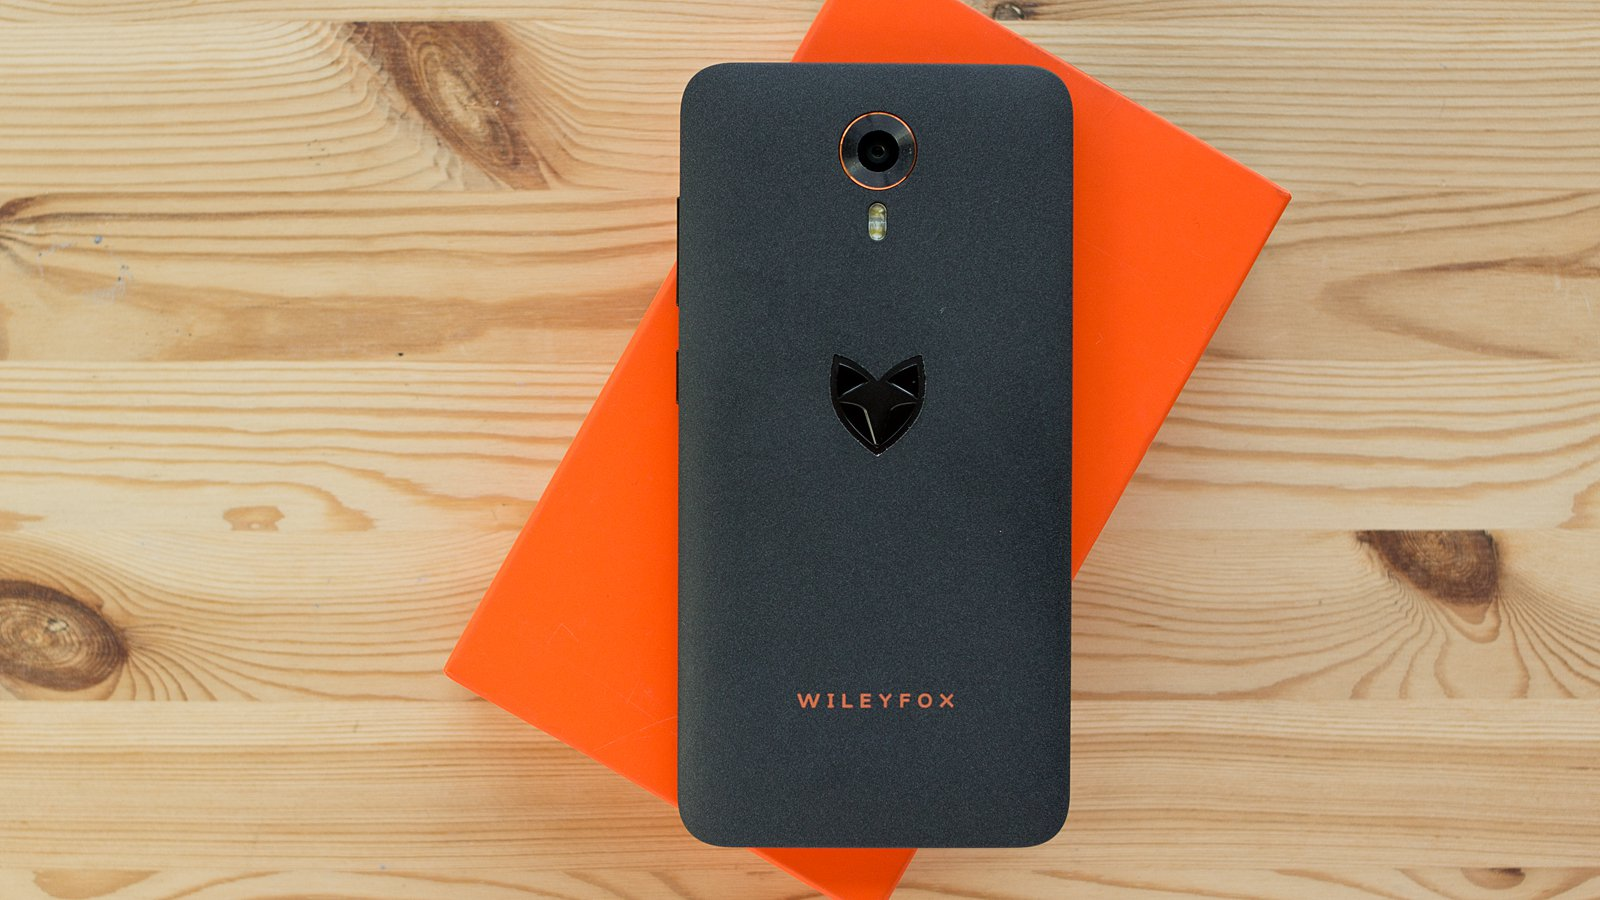 wileyfox_phone_review_28.jpg